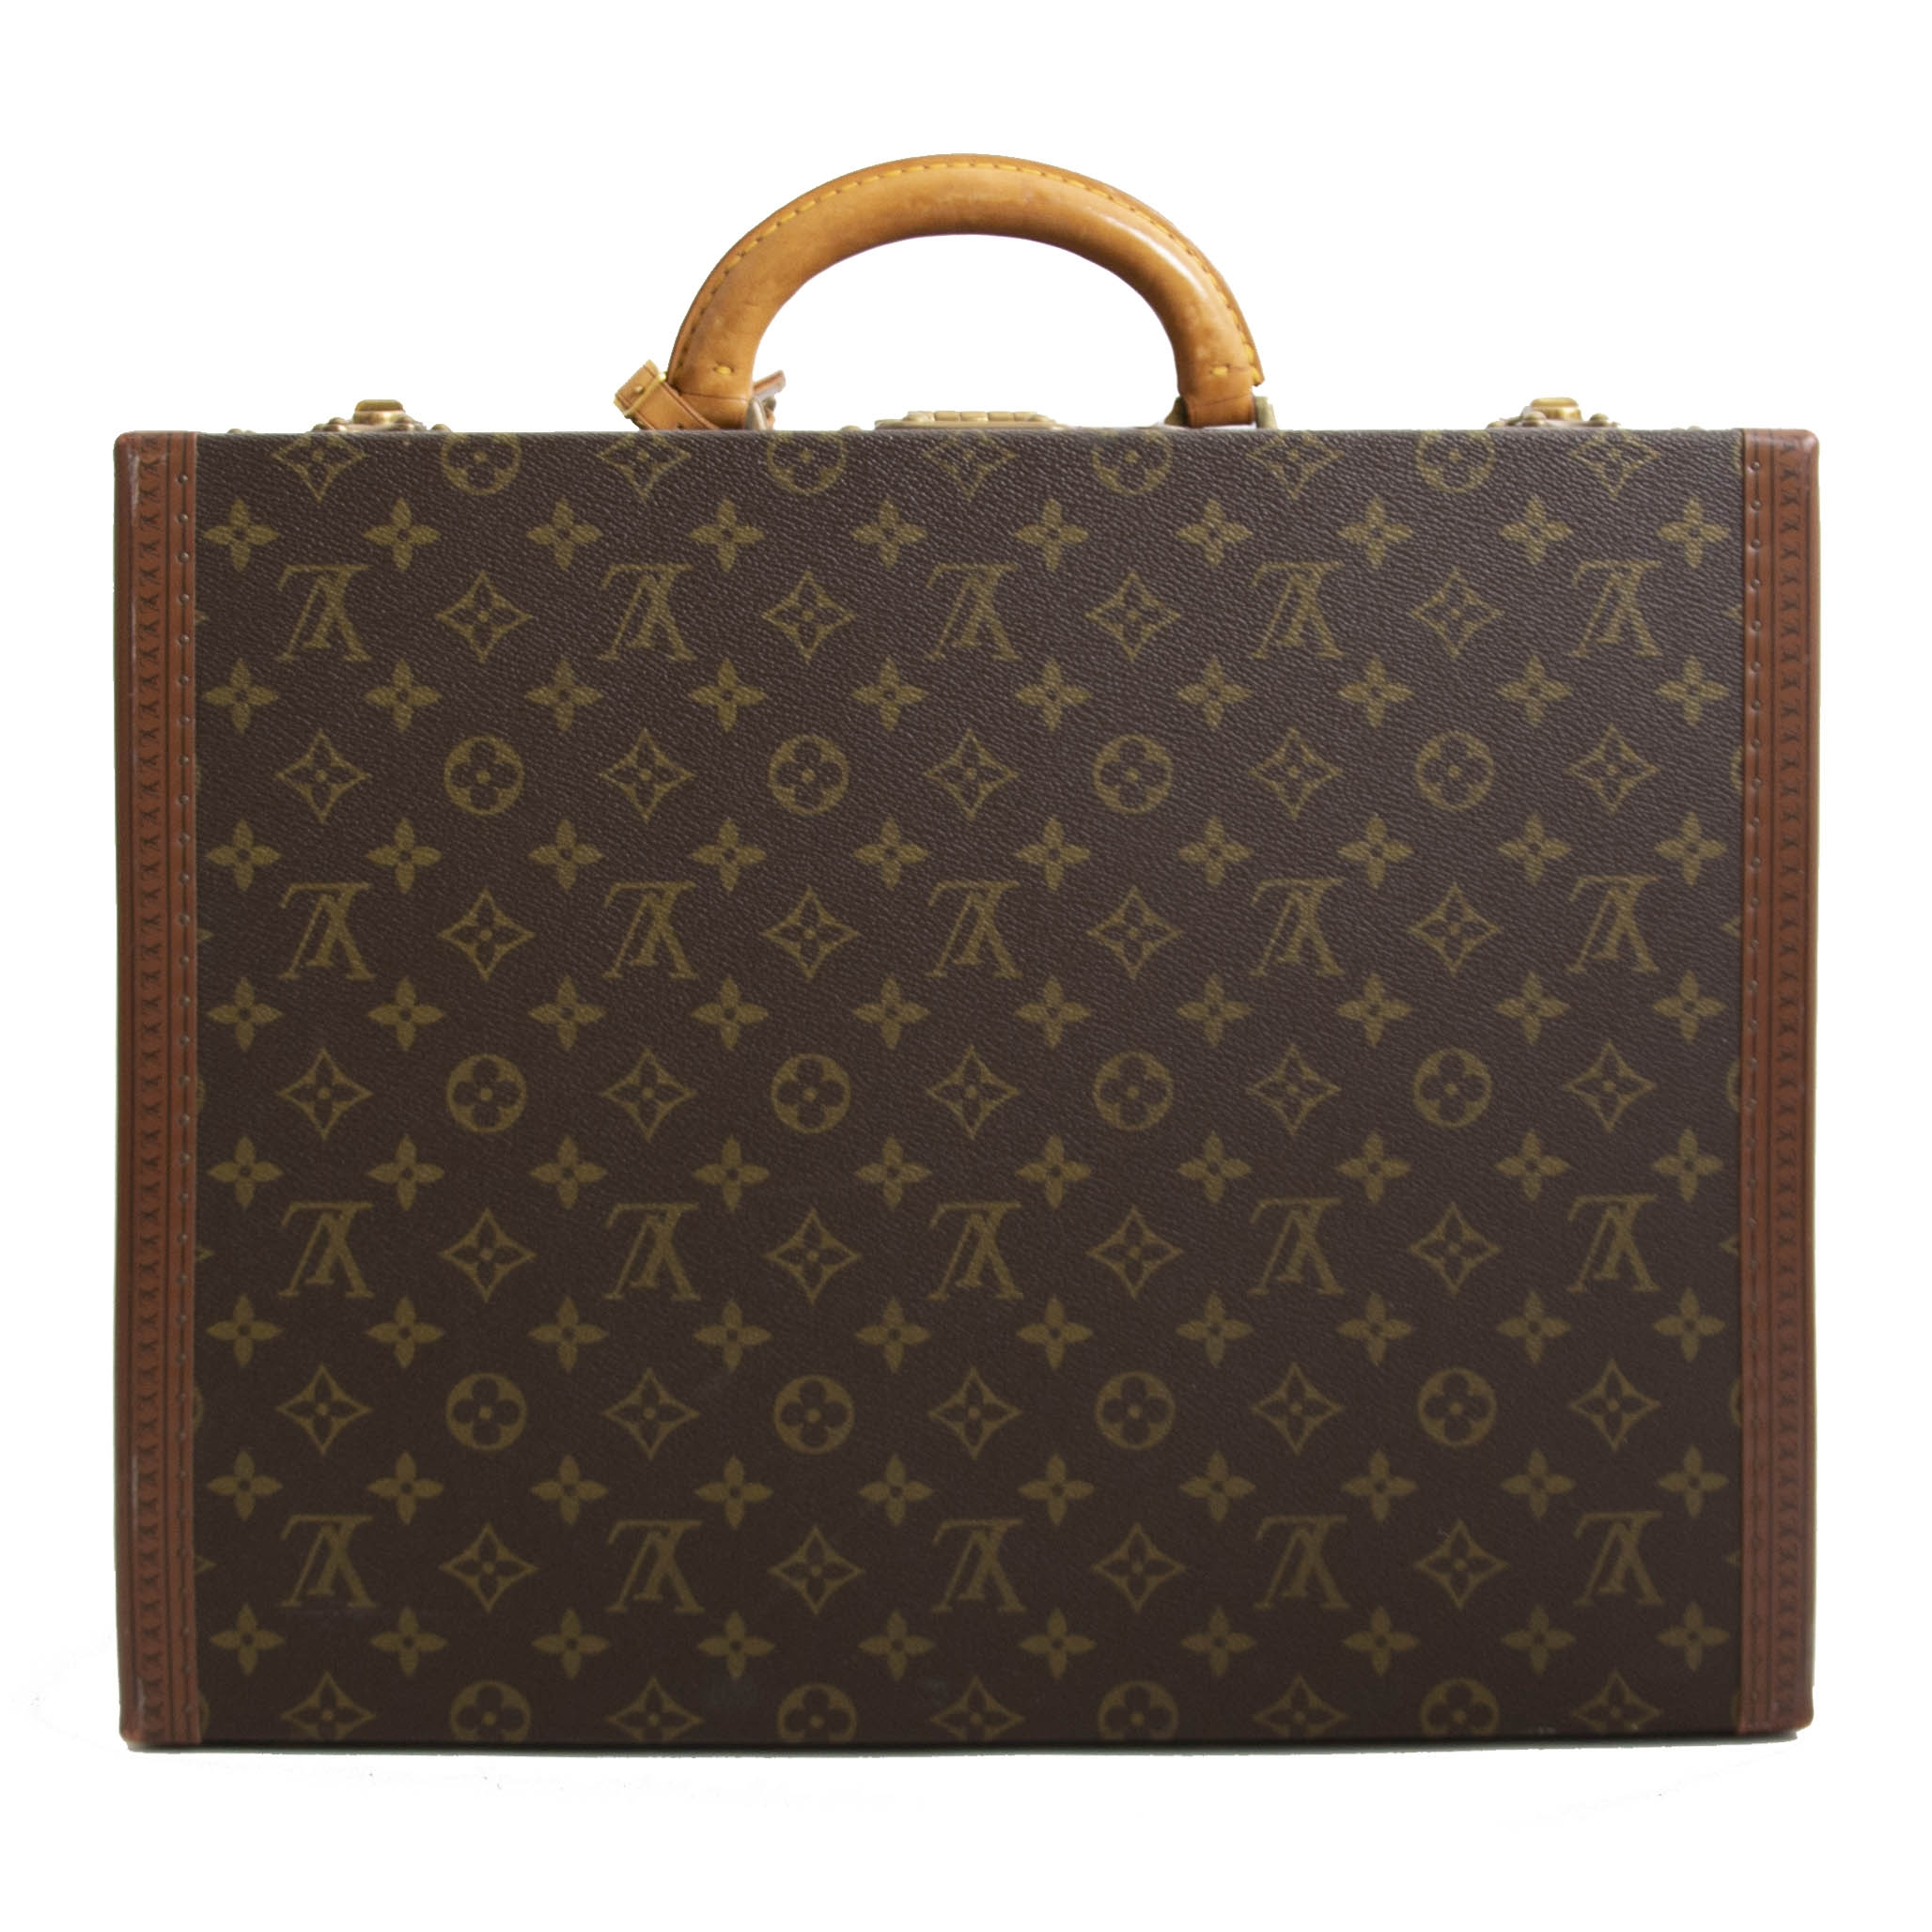 628f75ff0d Labellov Buy authentic vintage Louis Vuitton online with Labellov ...